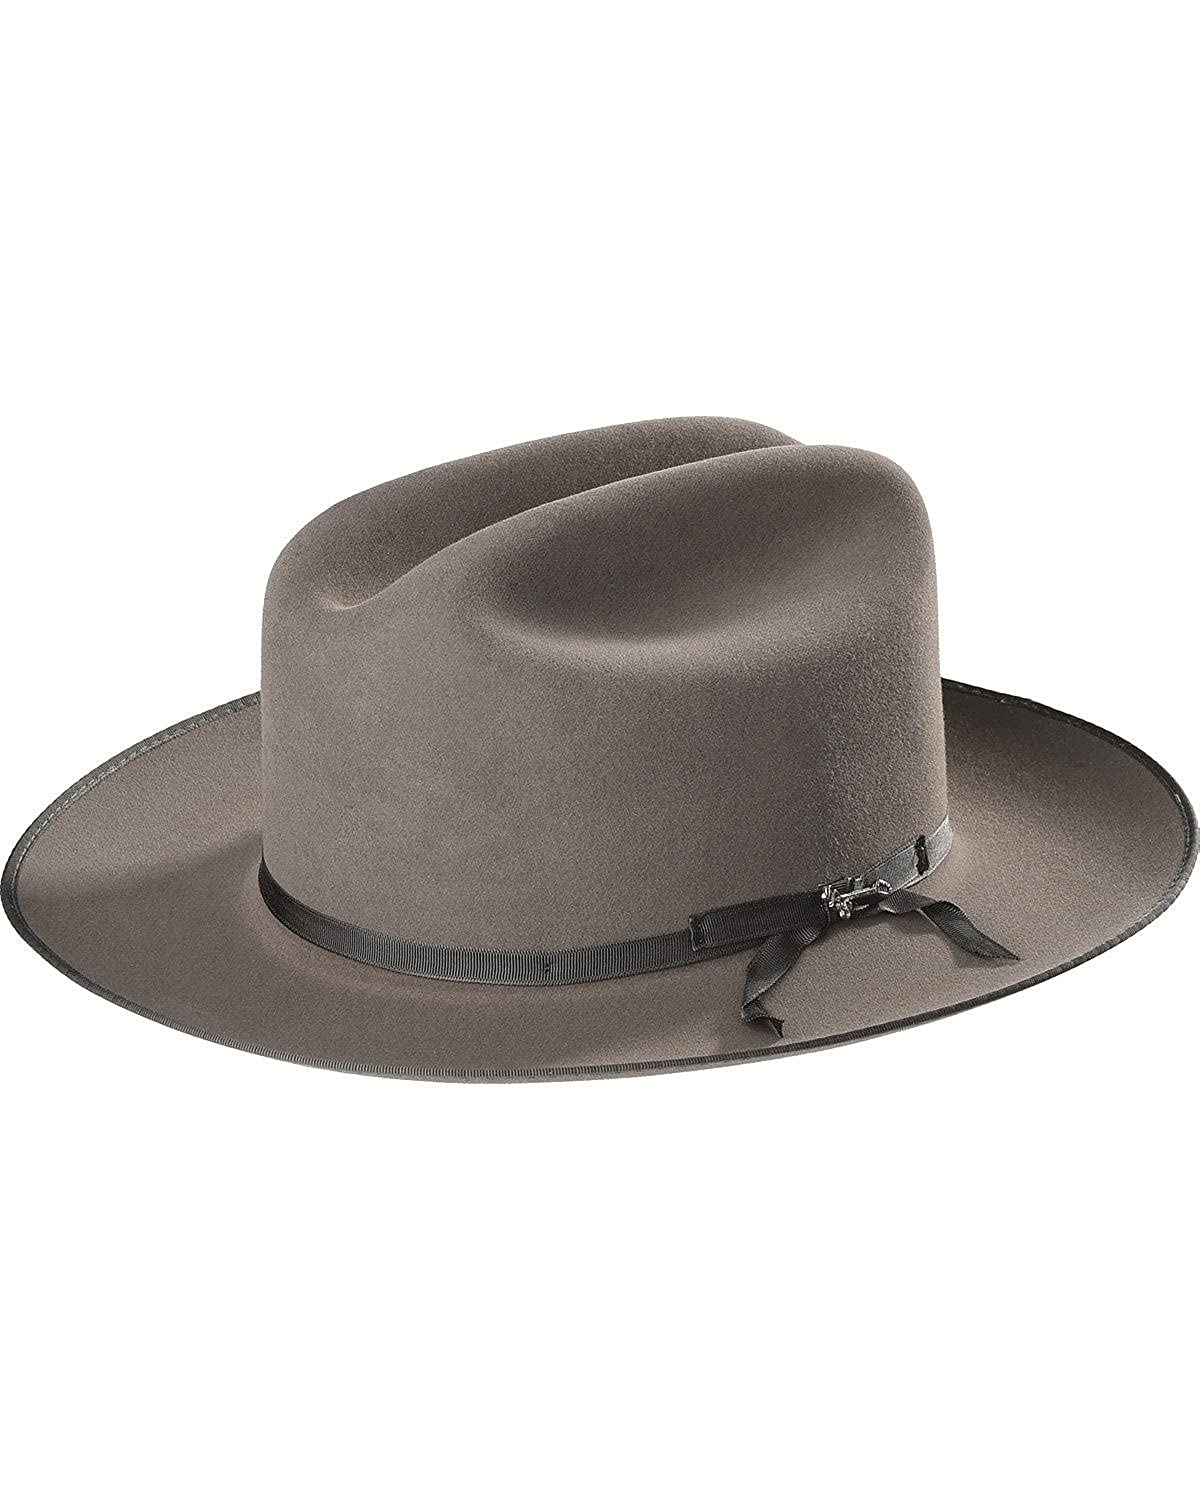 Stetson Men s Royal Deluxe Open Road Hat at Amazon Men s Clothing store  5f339398056